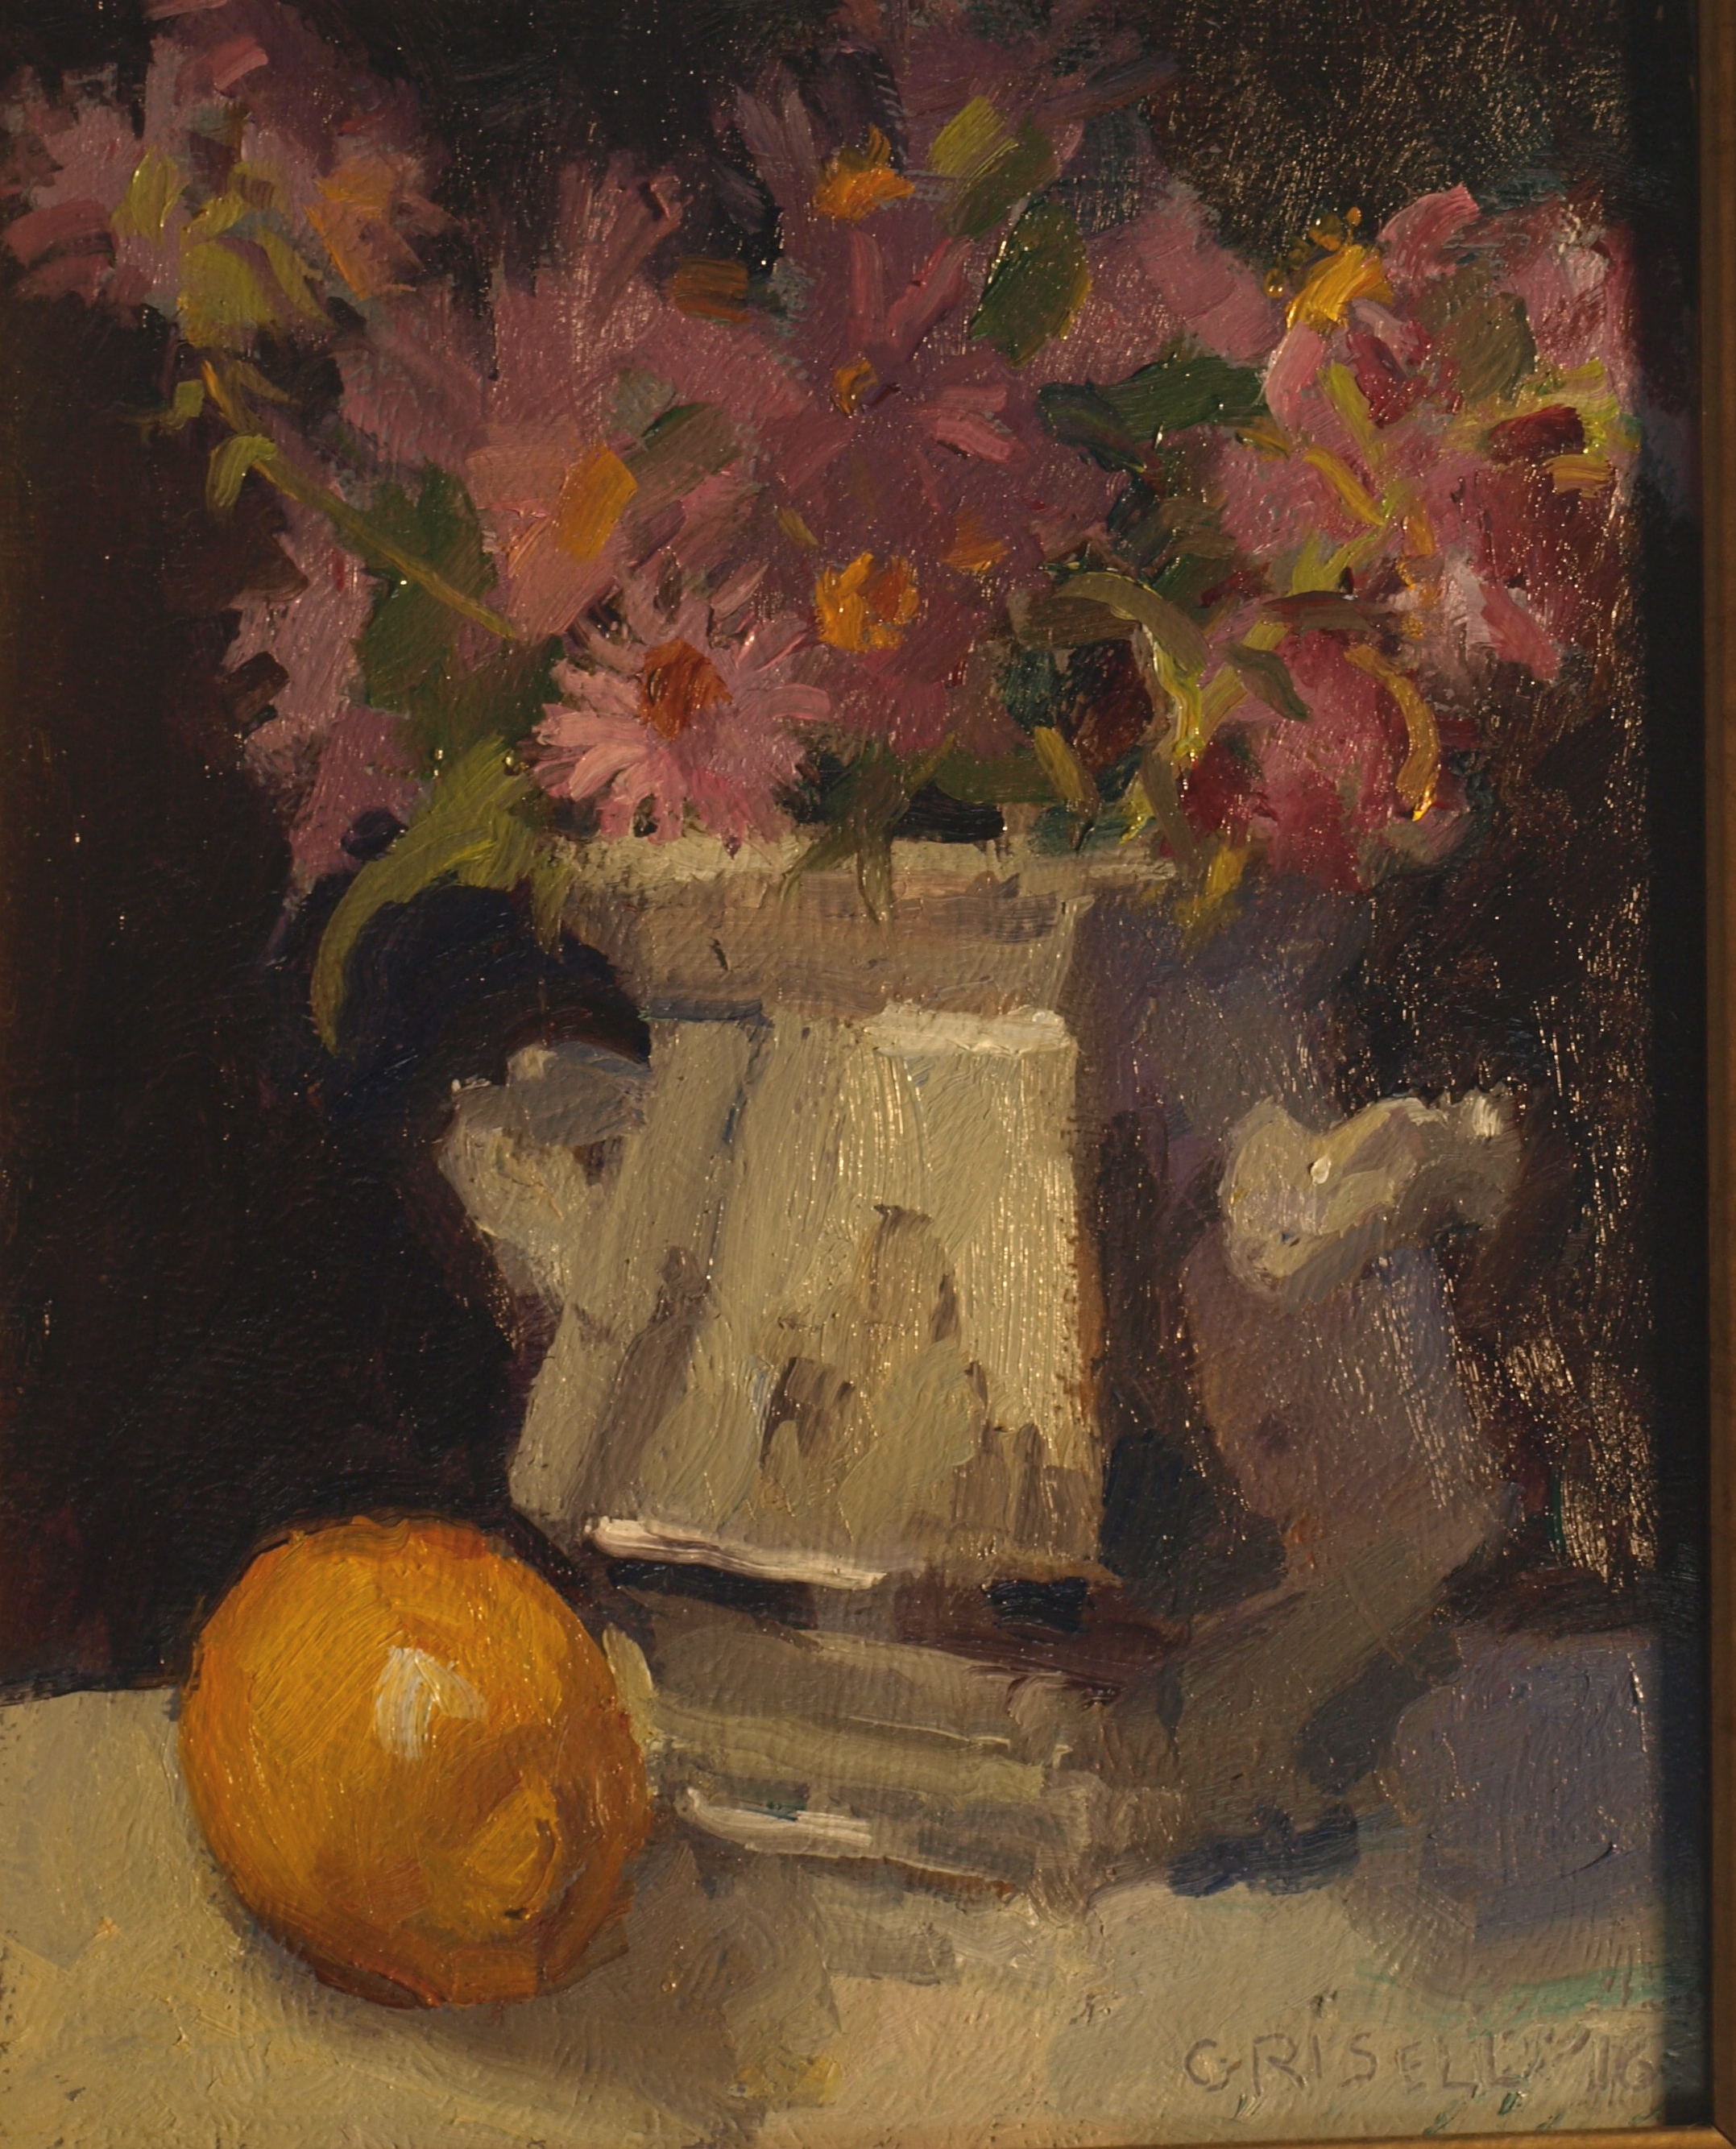 New England Asters, Oil on Panel, 10 x 8 Inches, by Susan Grisell, $200